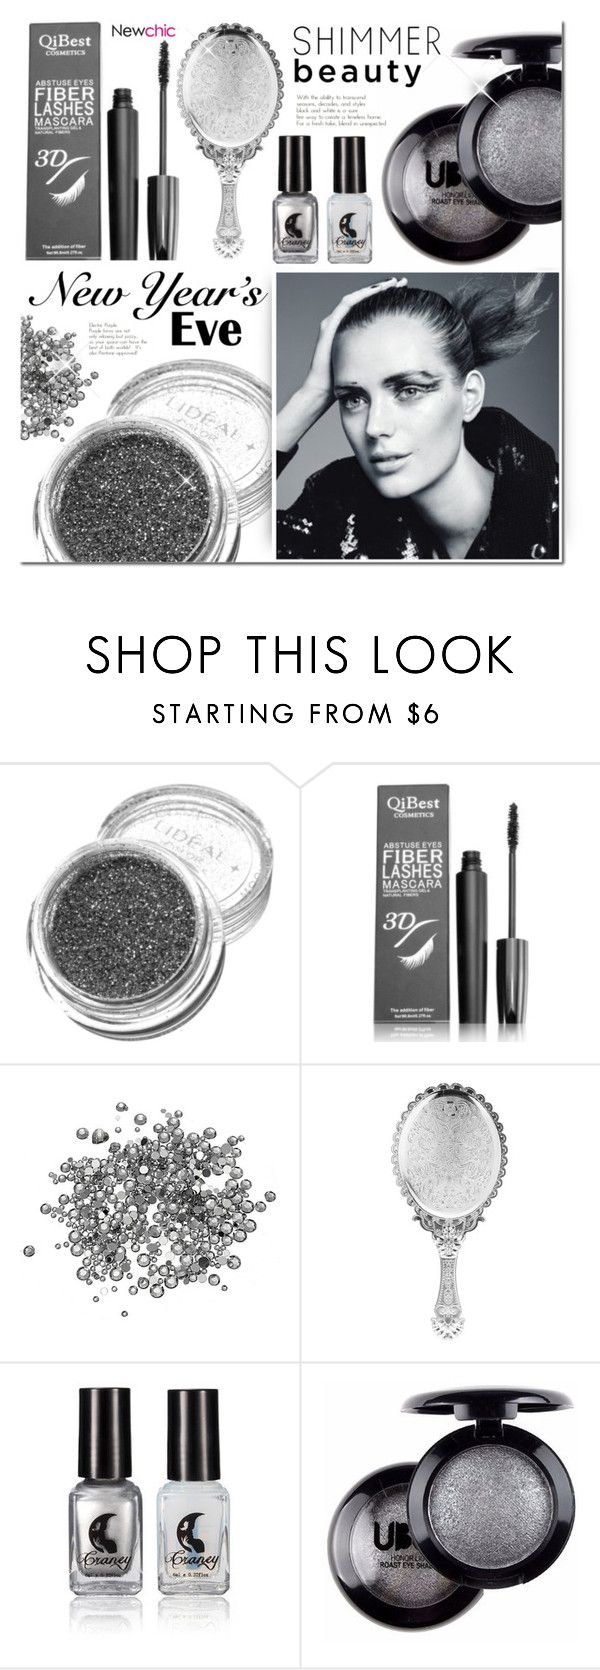 """""""NEWCHIC NYE Beauty"""" by mada-malureanu ❤ liked on Polyvore featuring beauty, lovenewchic and nyebeauty"""